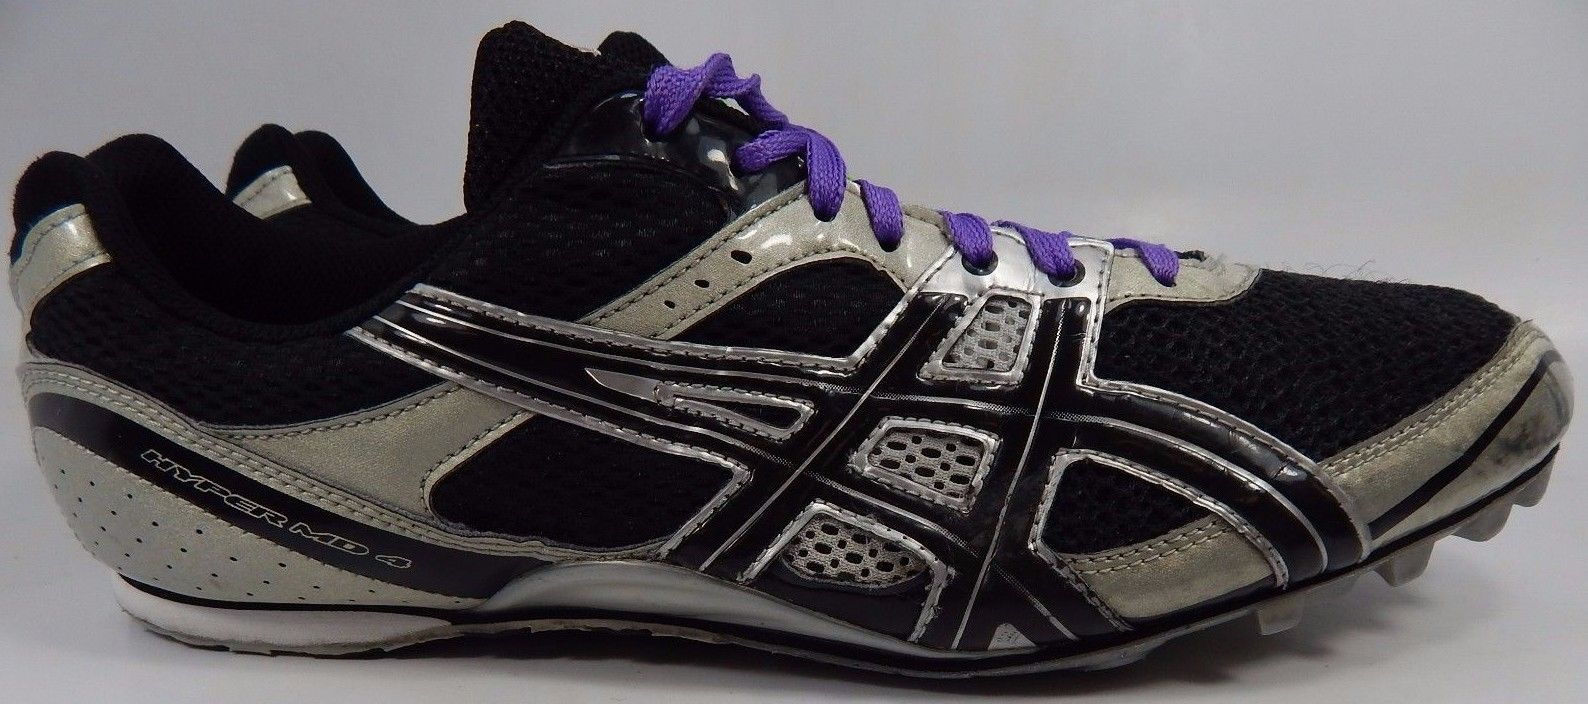 Asics Hyper MD 4 Men's Track Shoes Size US 13 M (D) EU 48 Black/Silver G101N